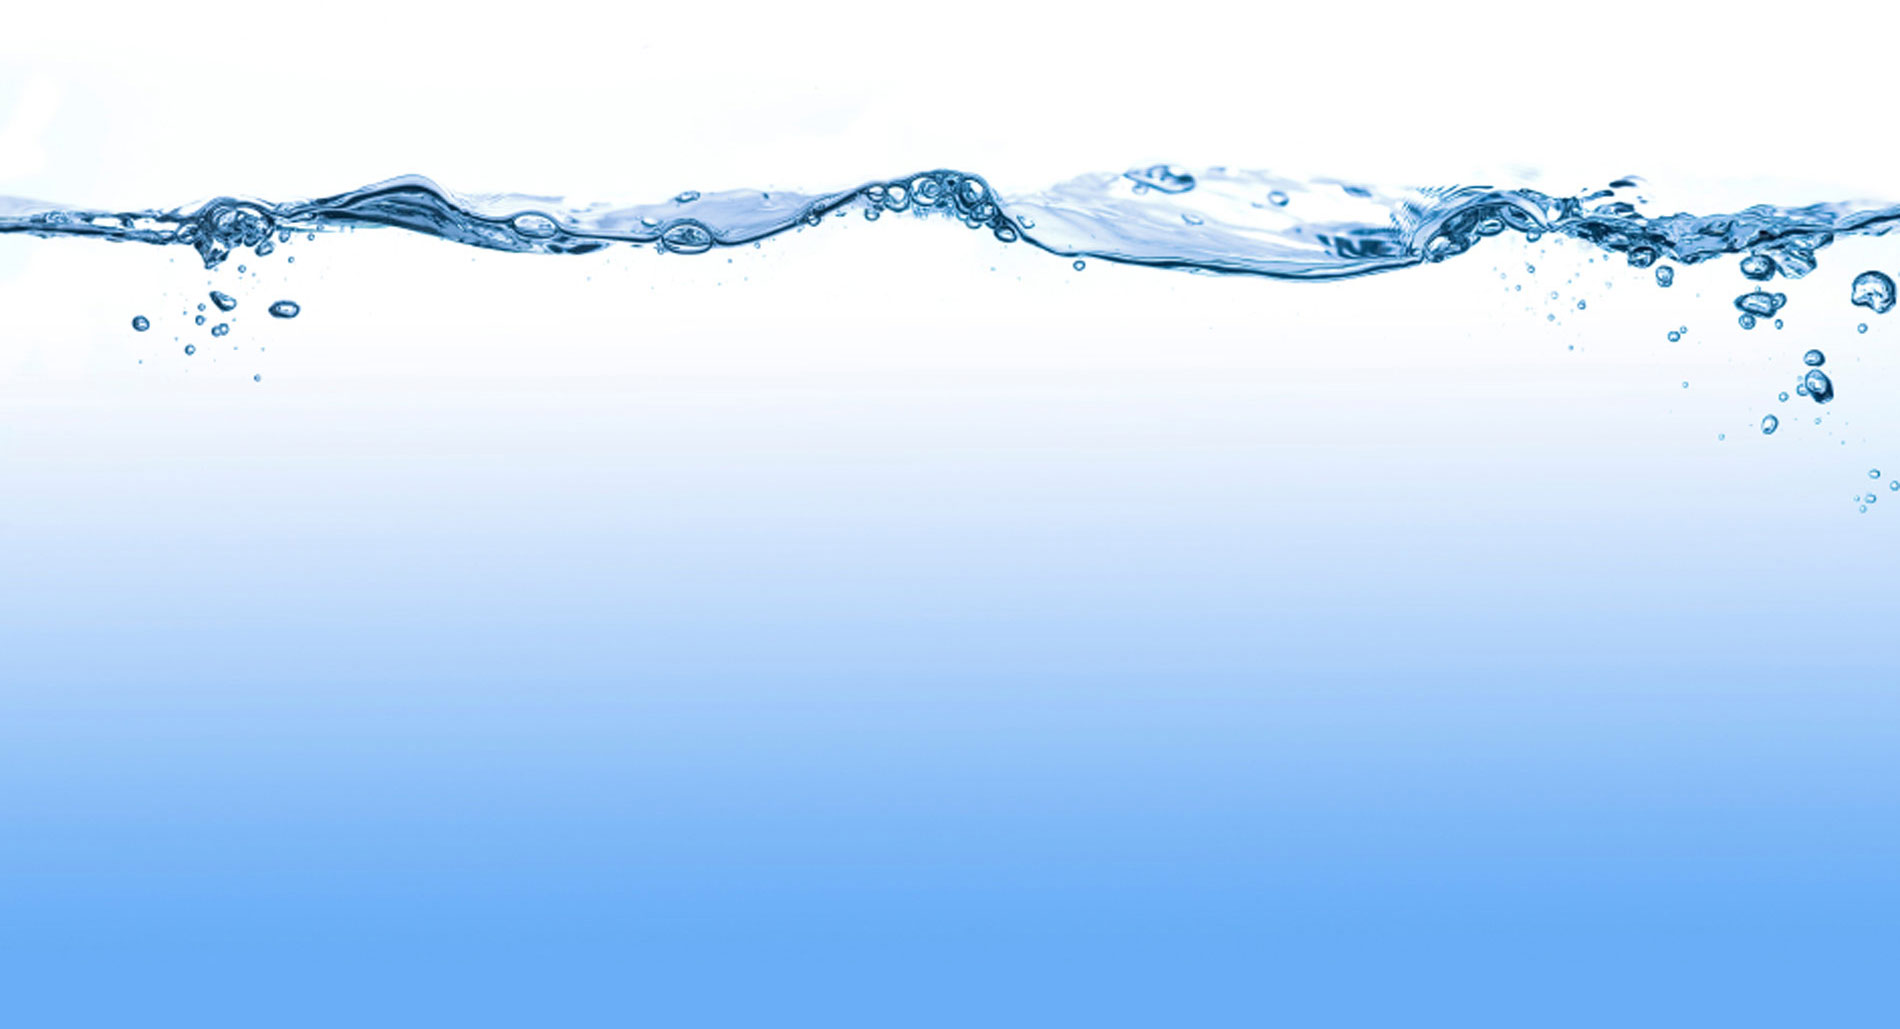 water background wallpaper hd 14616 trashpresso by miniwiz